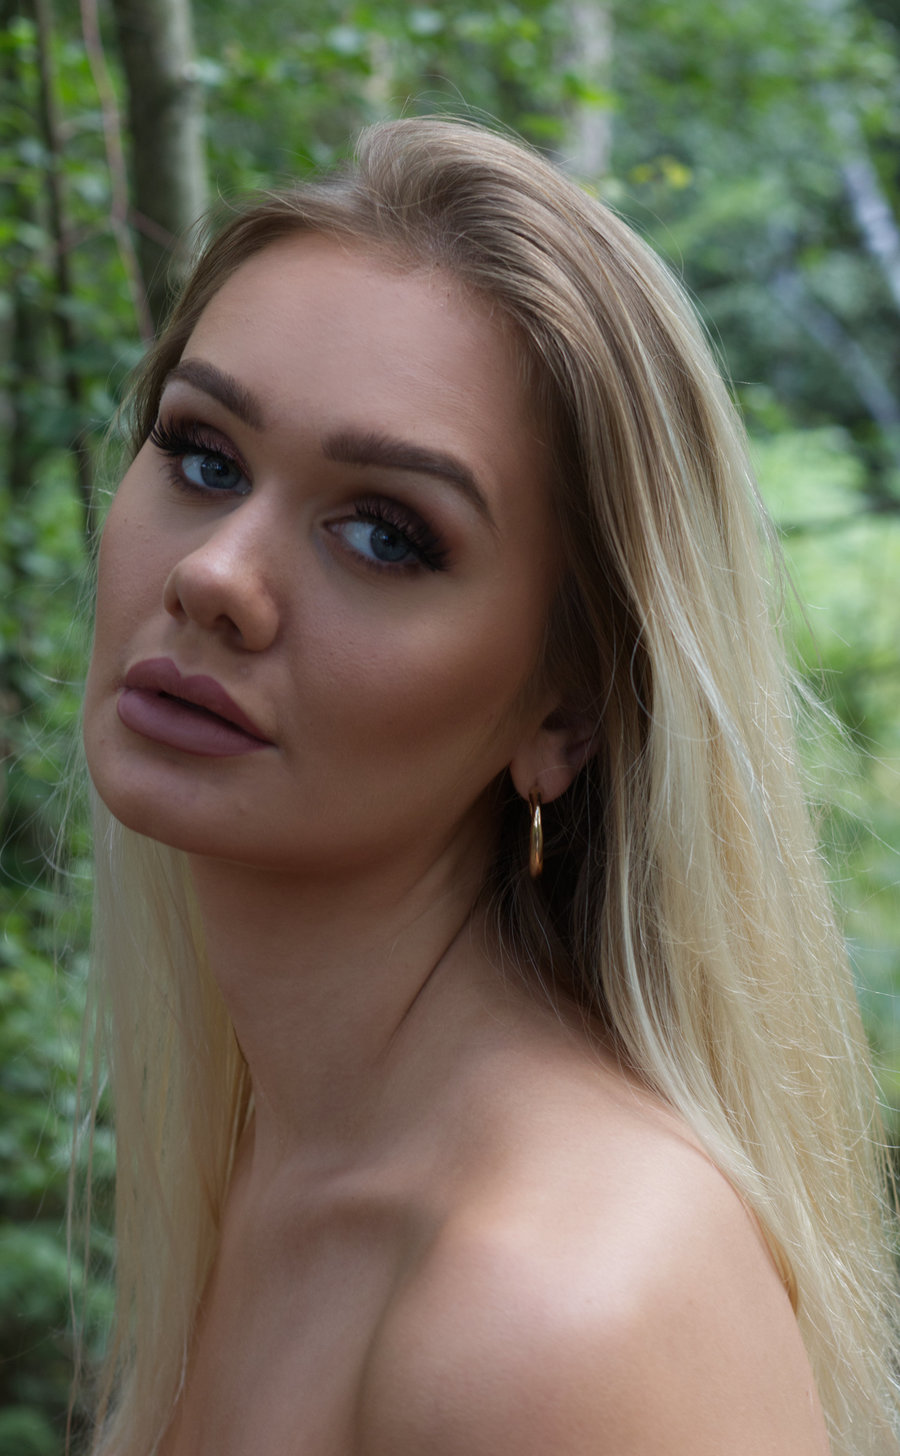 Photography by Jon Williams, Model Annalia / Uploaded 28th August 2021 @ 09:12 AM